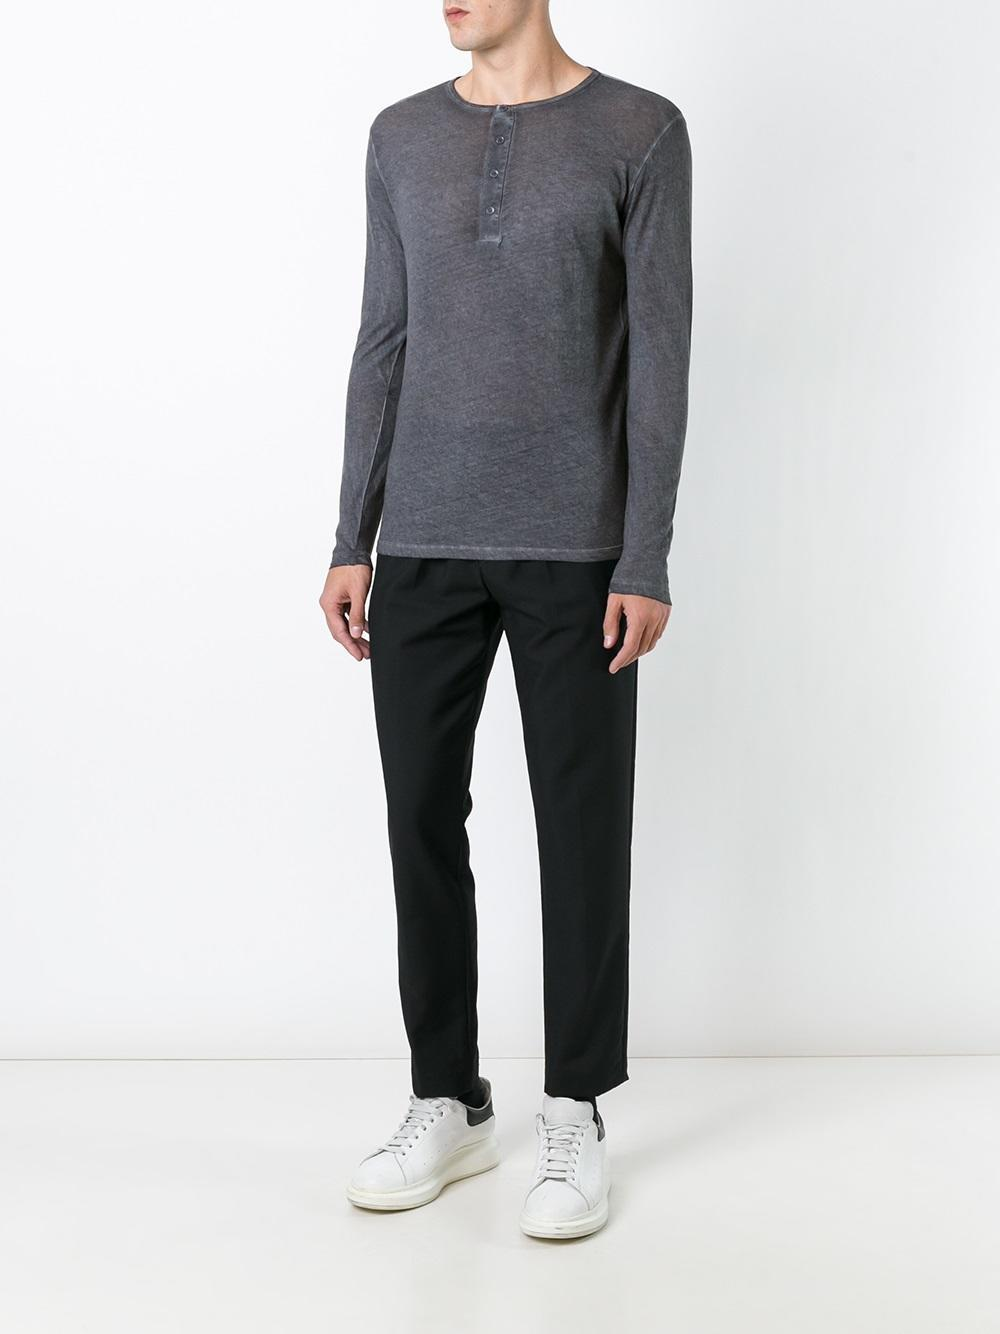 Lyst Majestic Filatures Buttoned Longsleeved T Shirt In